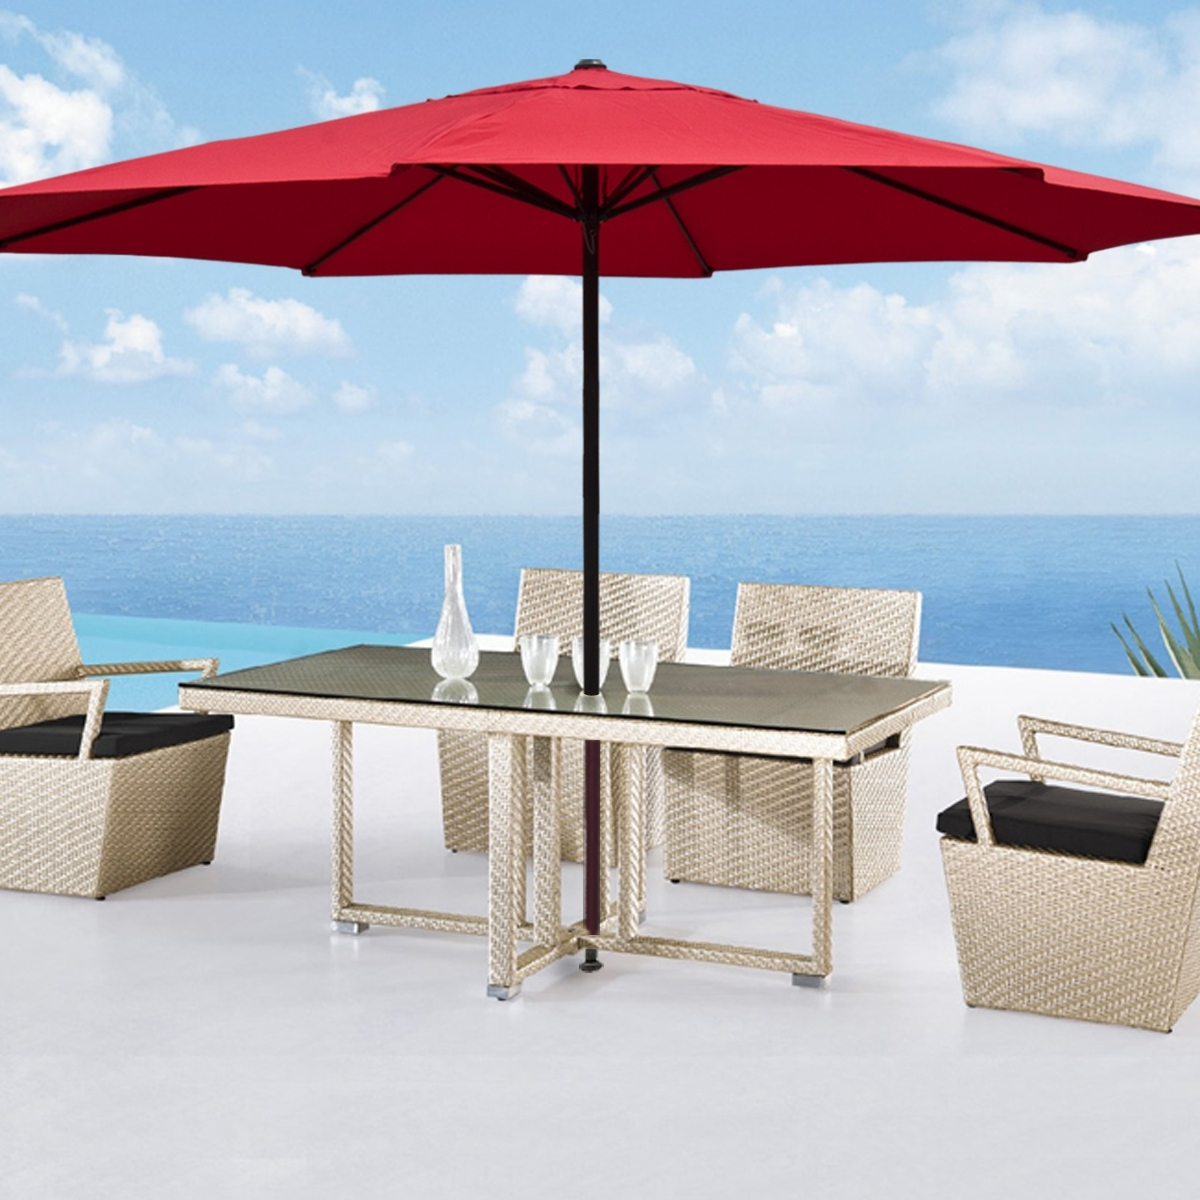 Large Patio Umbrellas With Regard To Preferred Red Large Patio Umbrellas — Wilson Home Ideas : Stylish Large Patio (View 5 of 20)